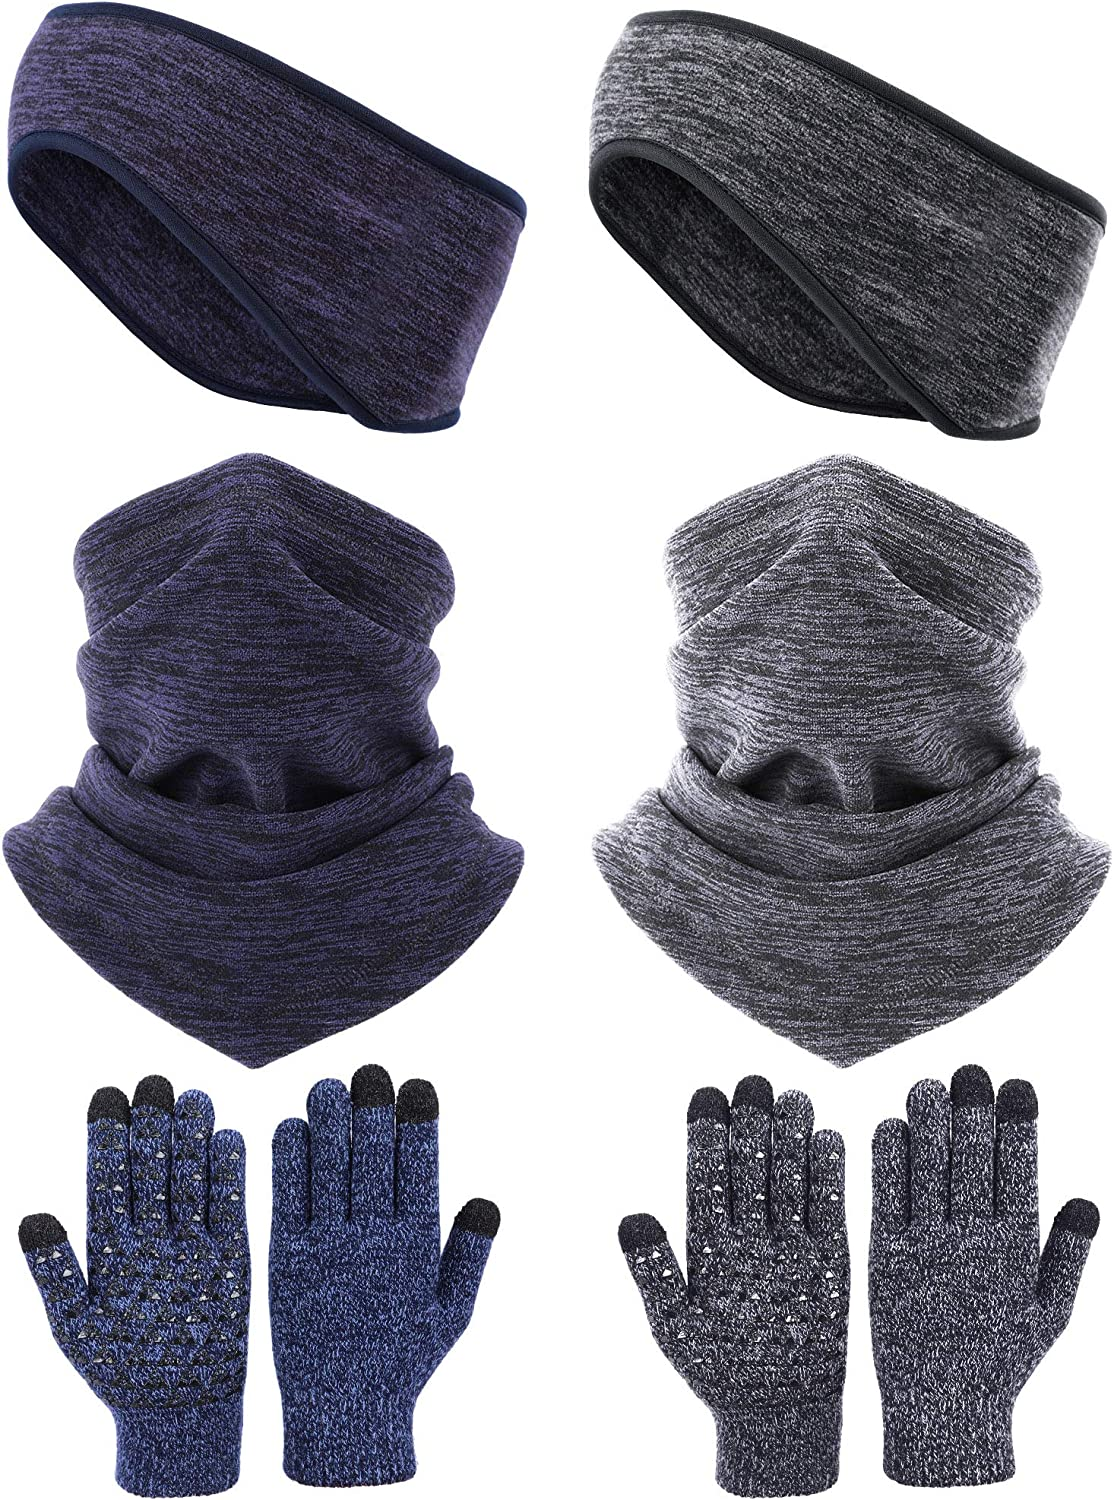 Syhood 6 Pieces Neck Warmer Gaiters with Drawstring Fleece Headbands Earmuffs Touchscreen Gloves for Adult Winter